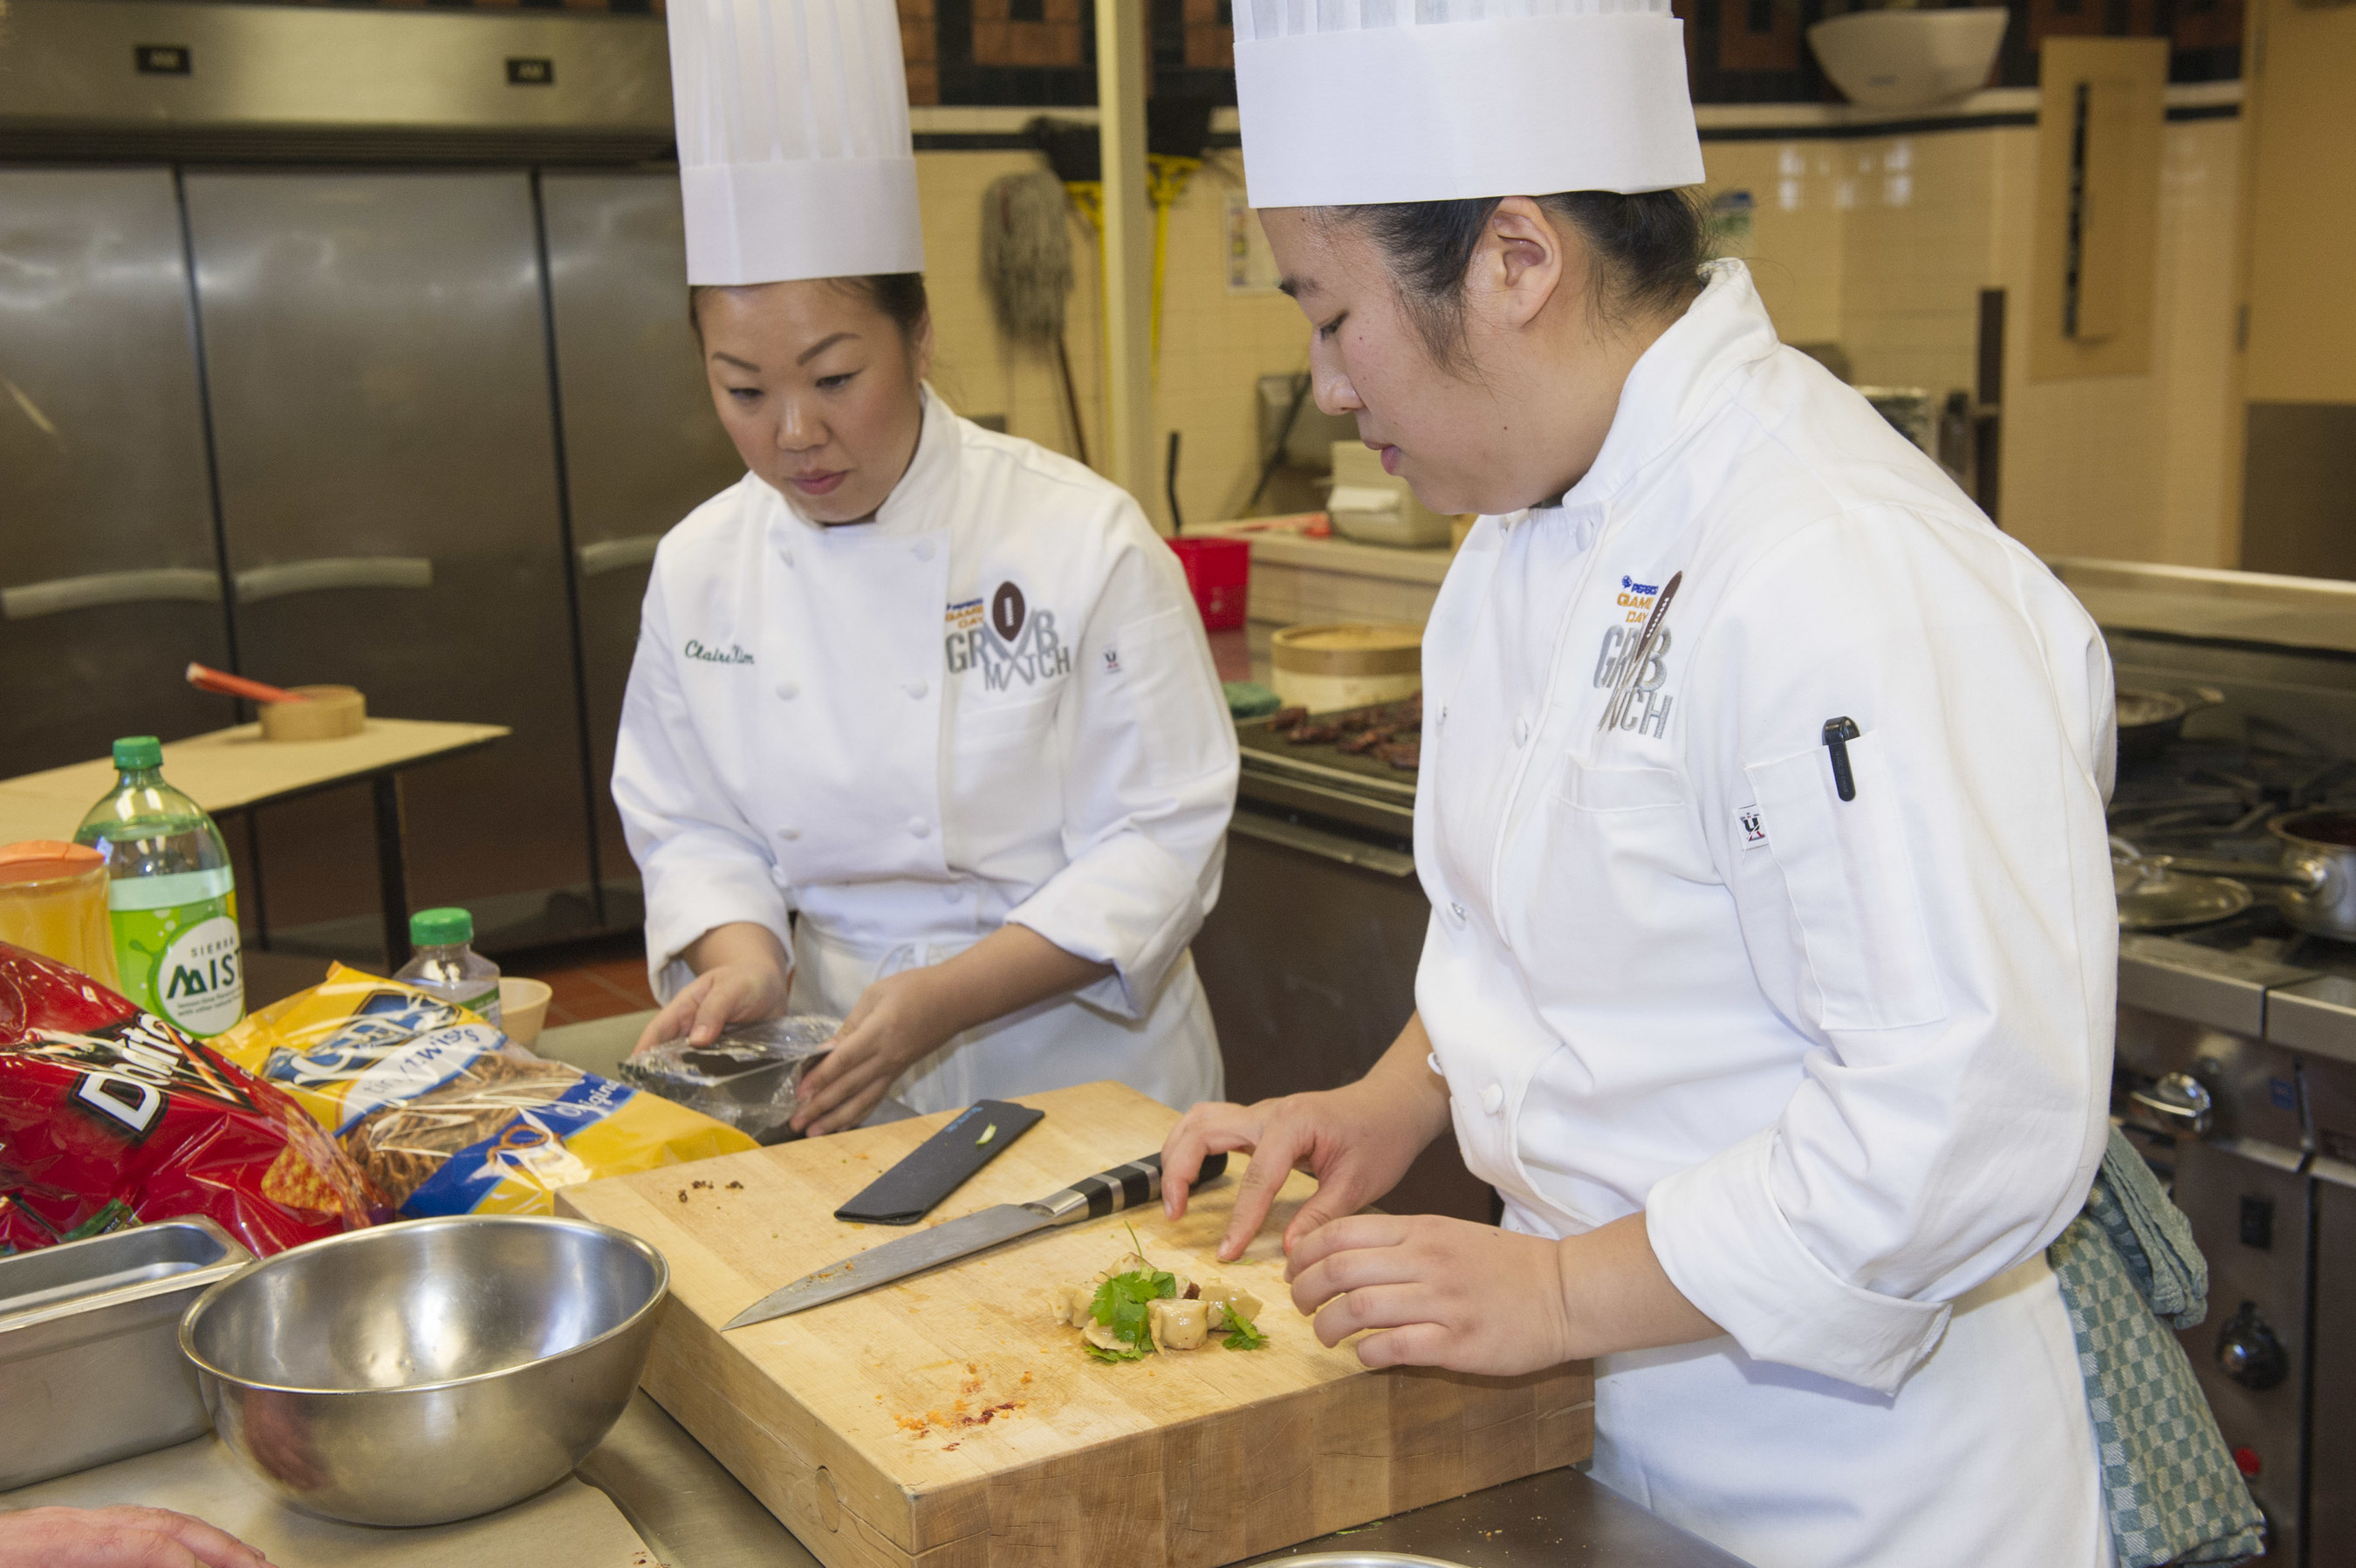 Students from The Culinary Institute of America in the kitchen, competing for a trip to Super Bowl 50 in PepsiCo's Game Day Grub Match.